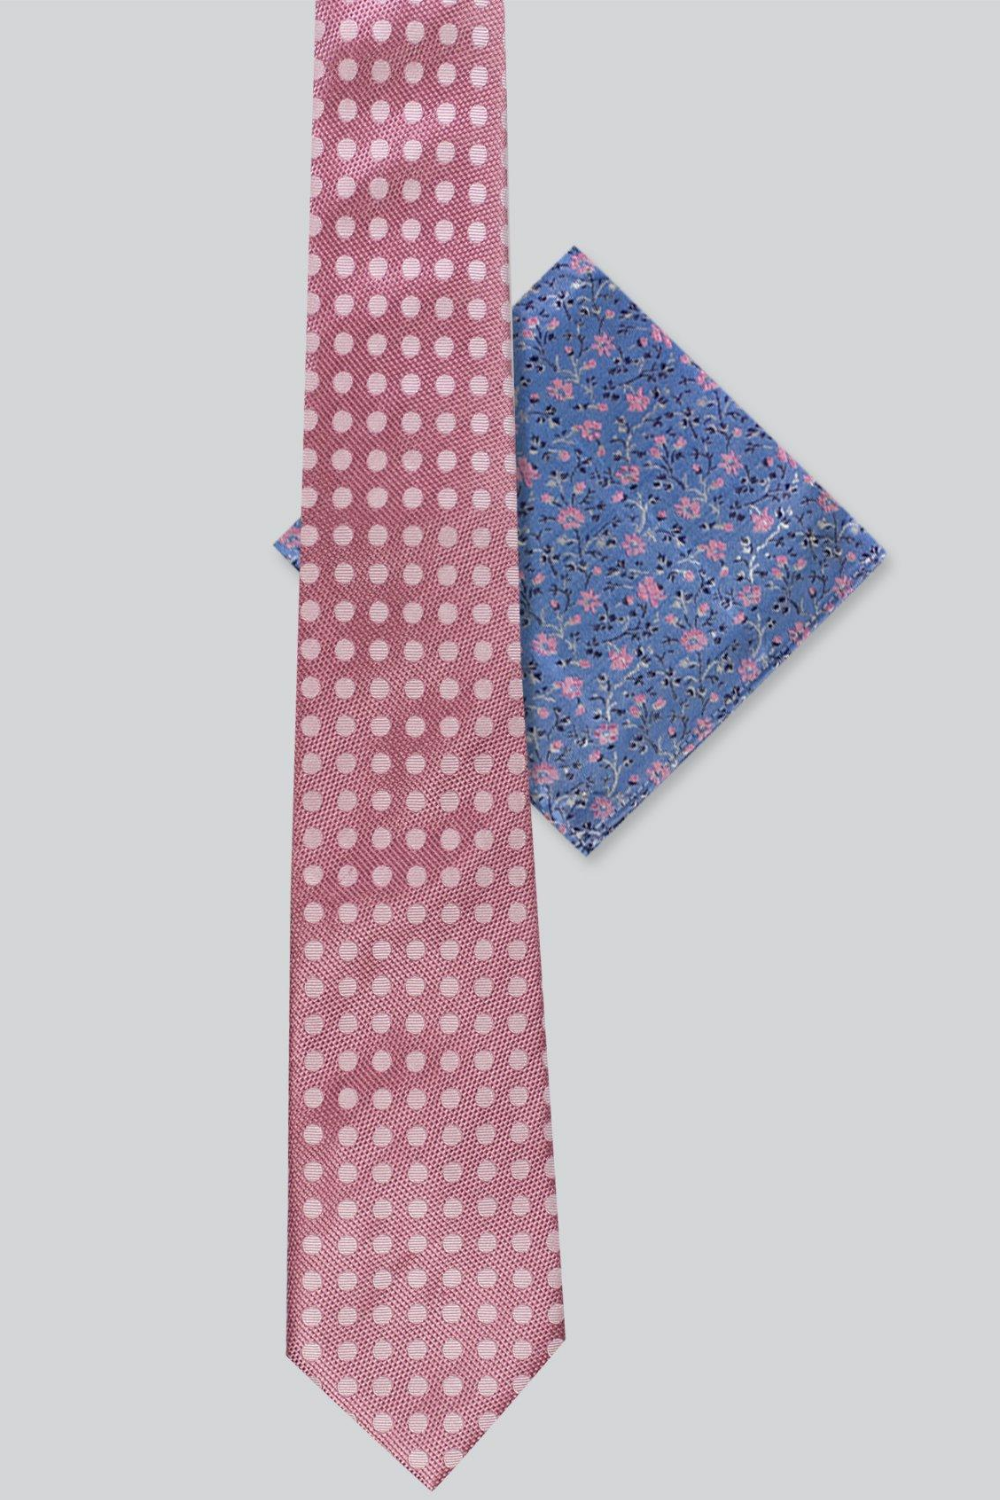 James Harper Spot Tie & Floral Hank